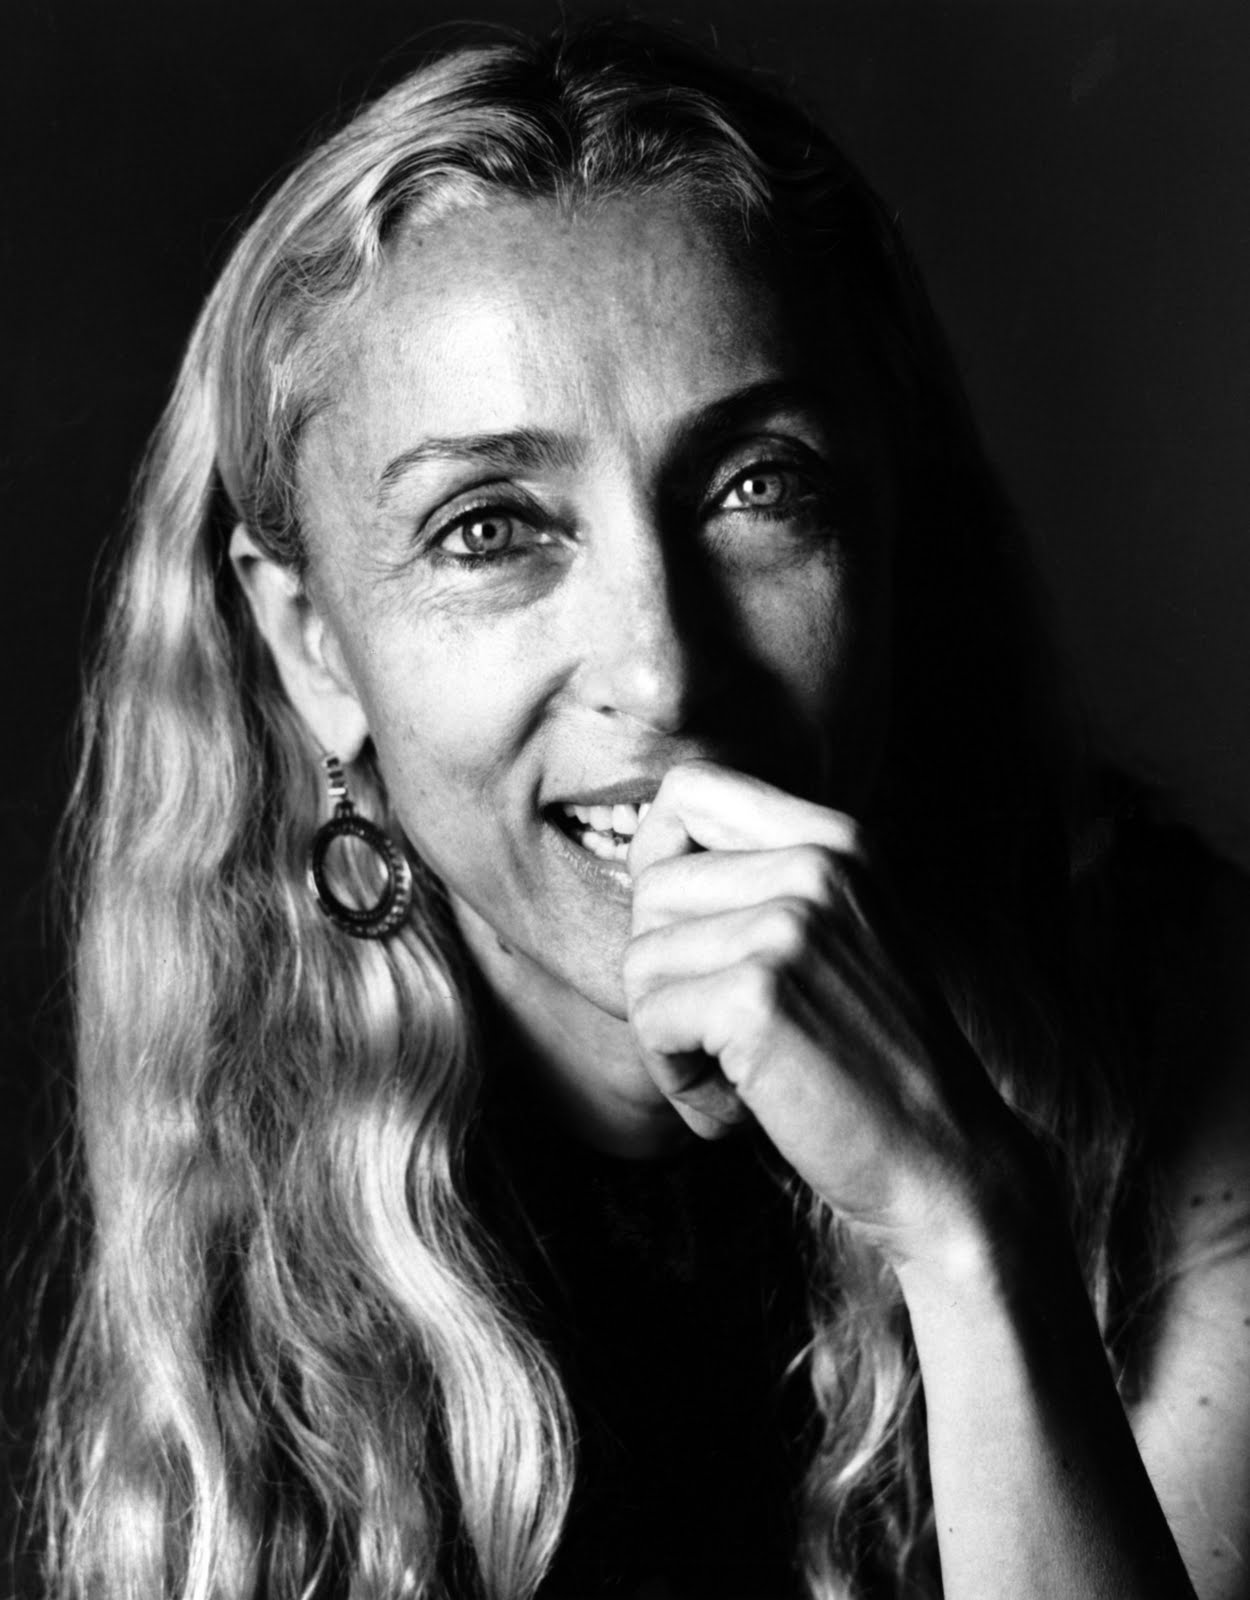 Franca Sozzani photo #302699